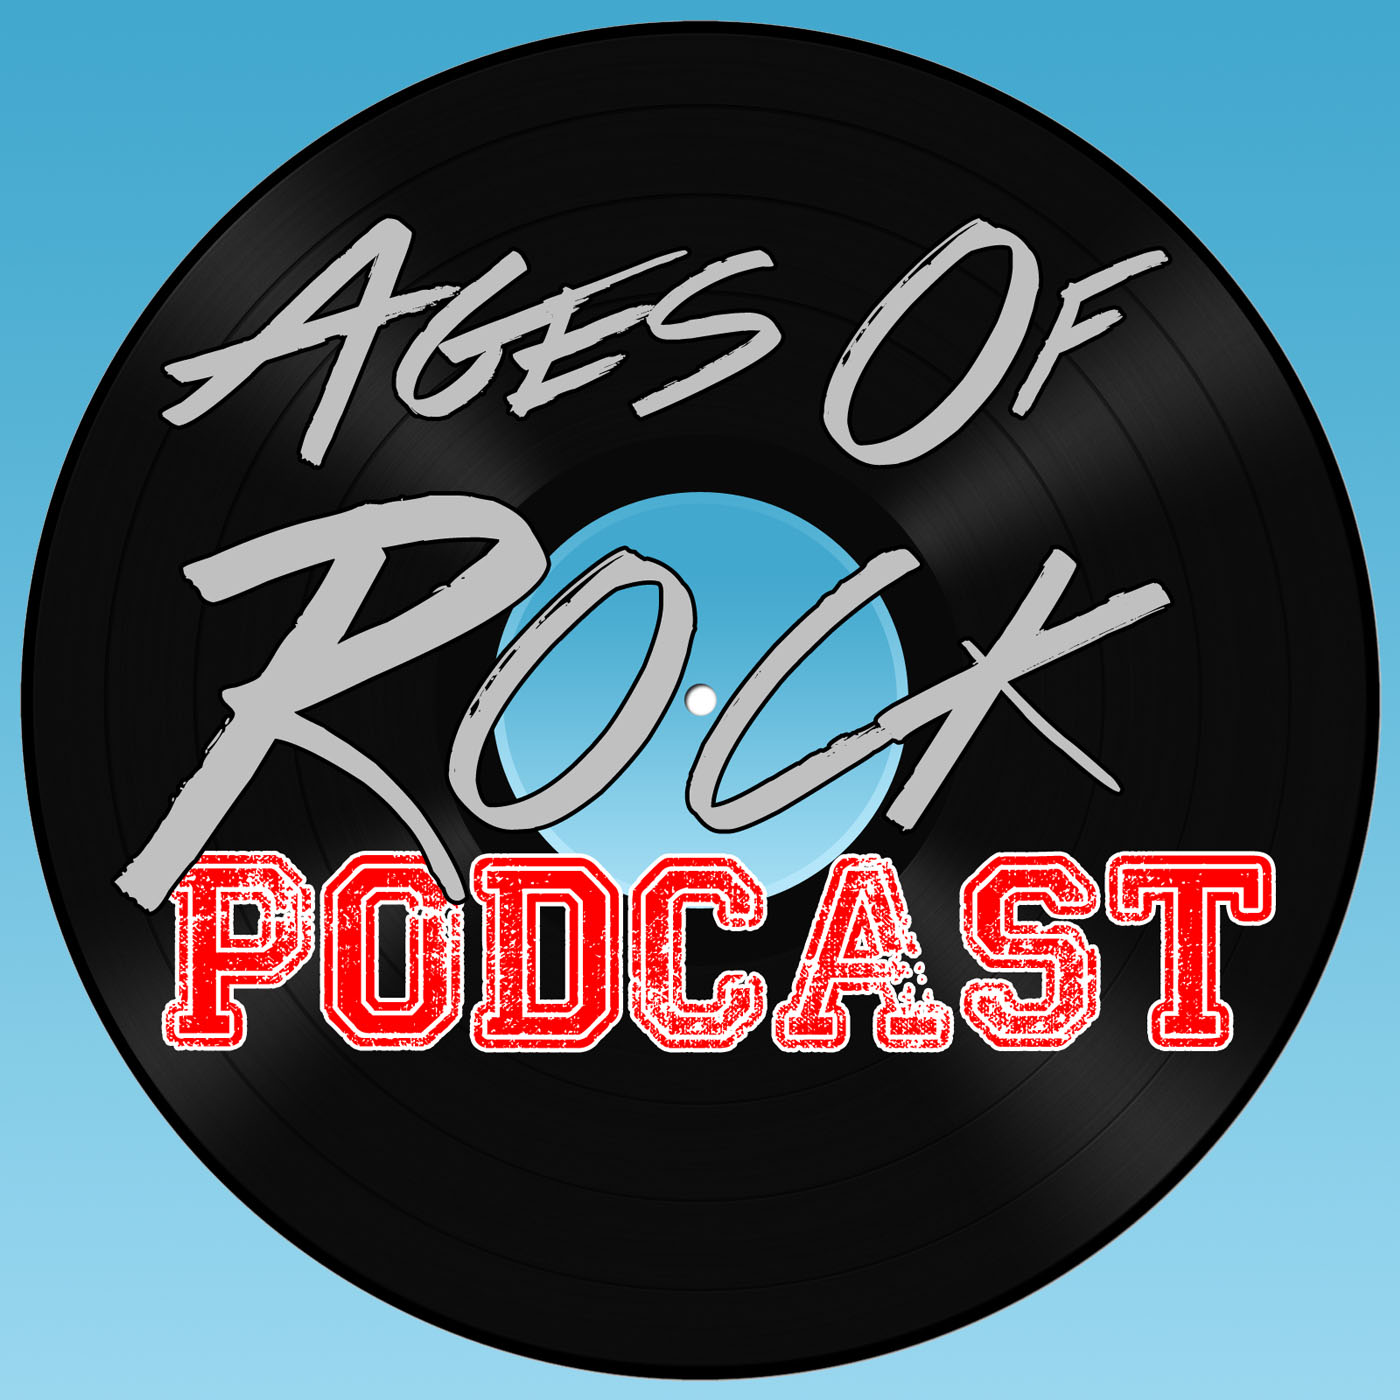 Art for Ages of Rock Podcast's Bill Algee for A2Z Radio by Bill Algee